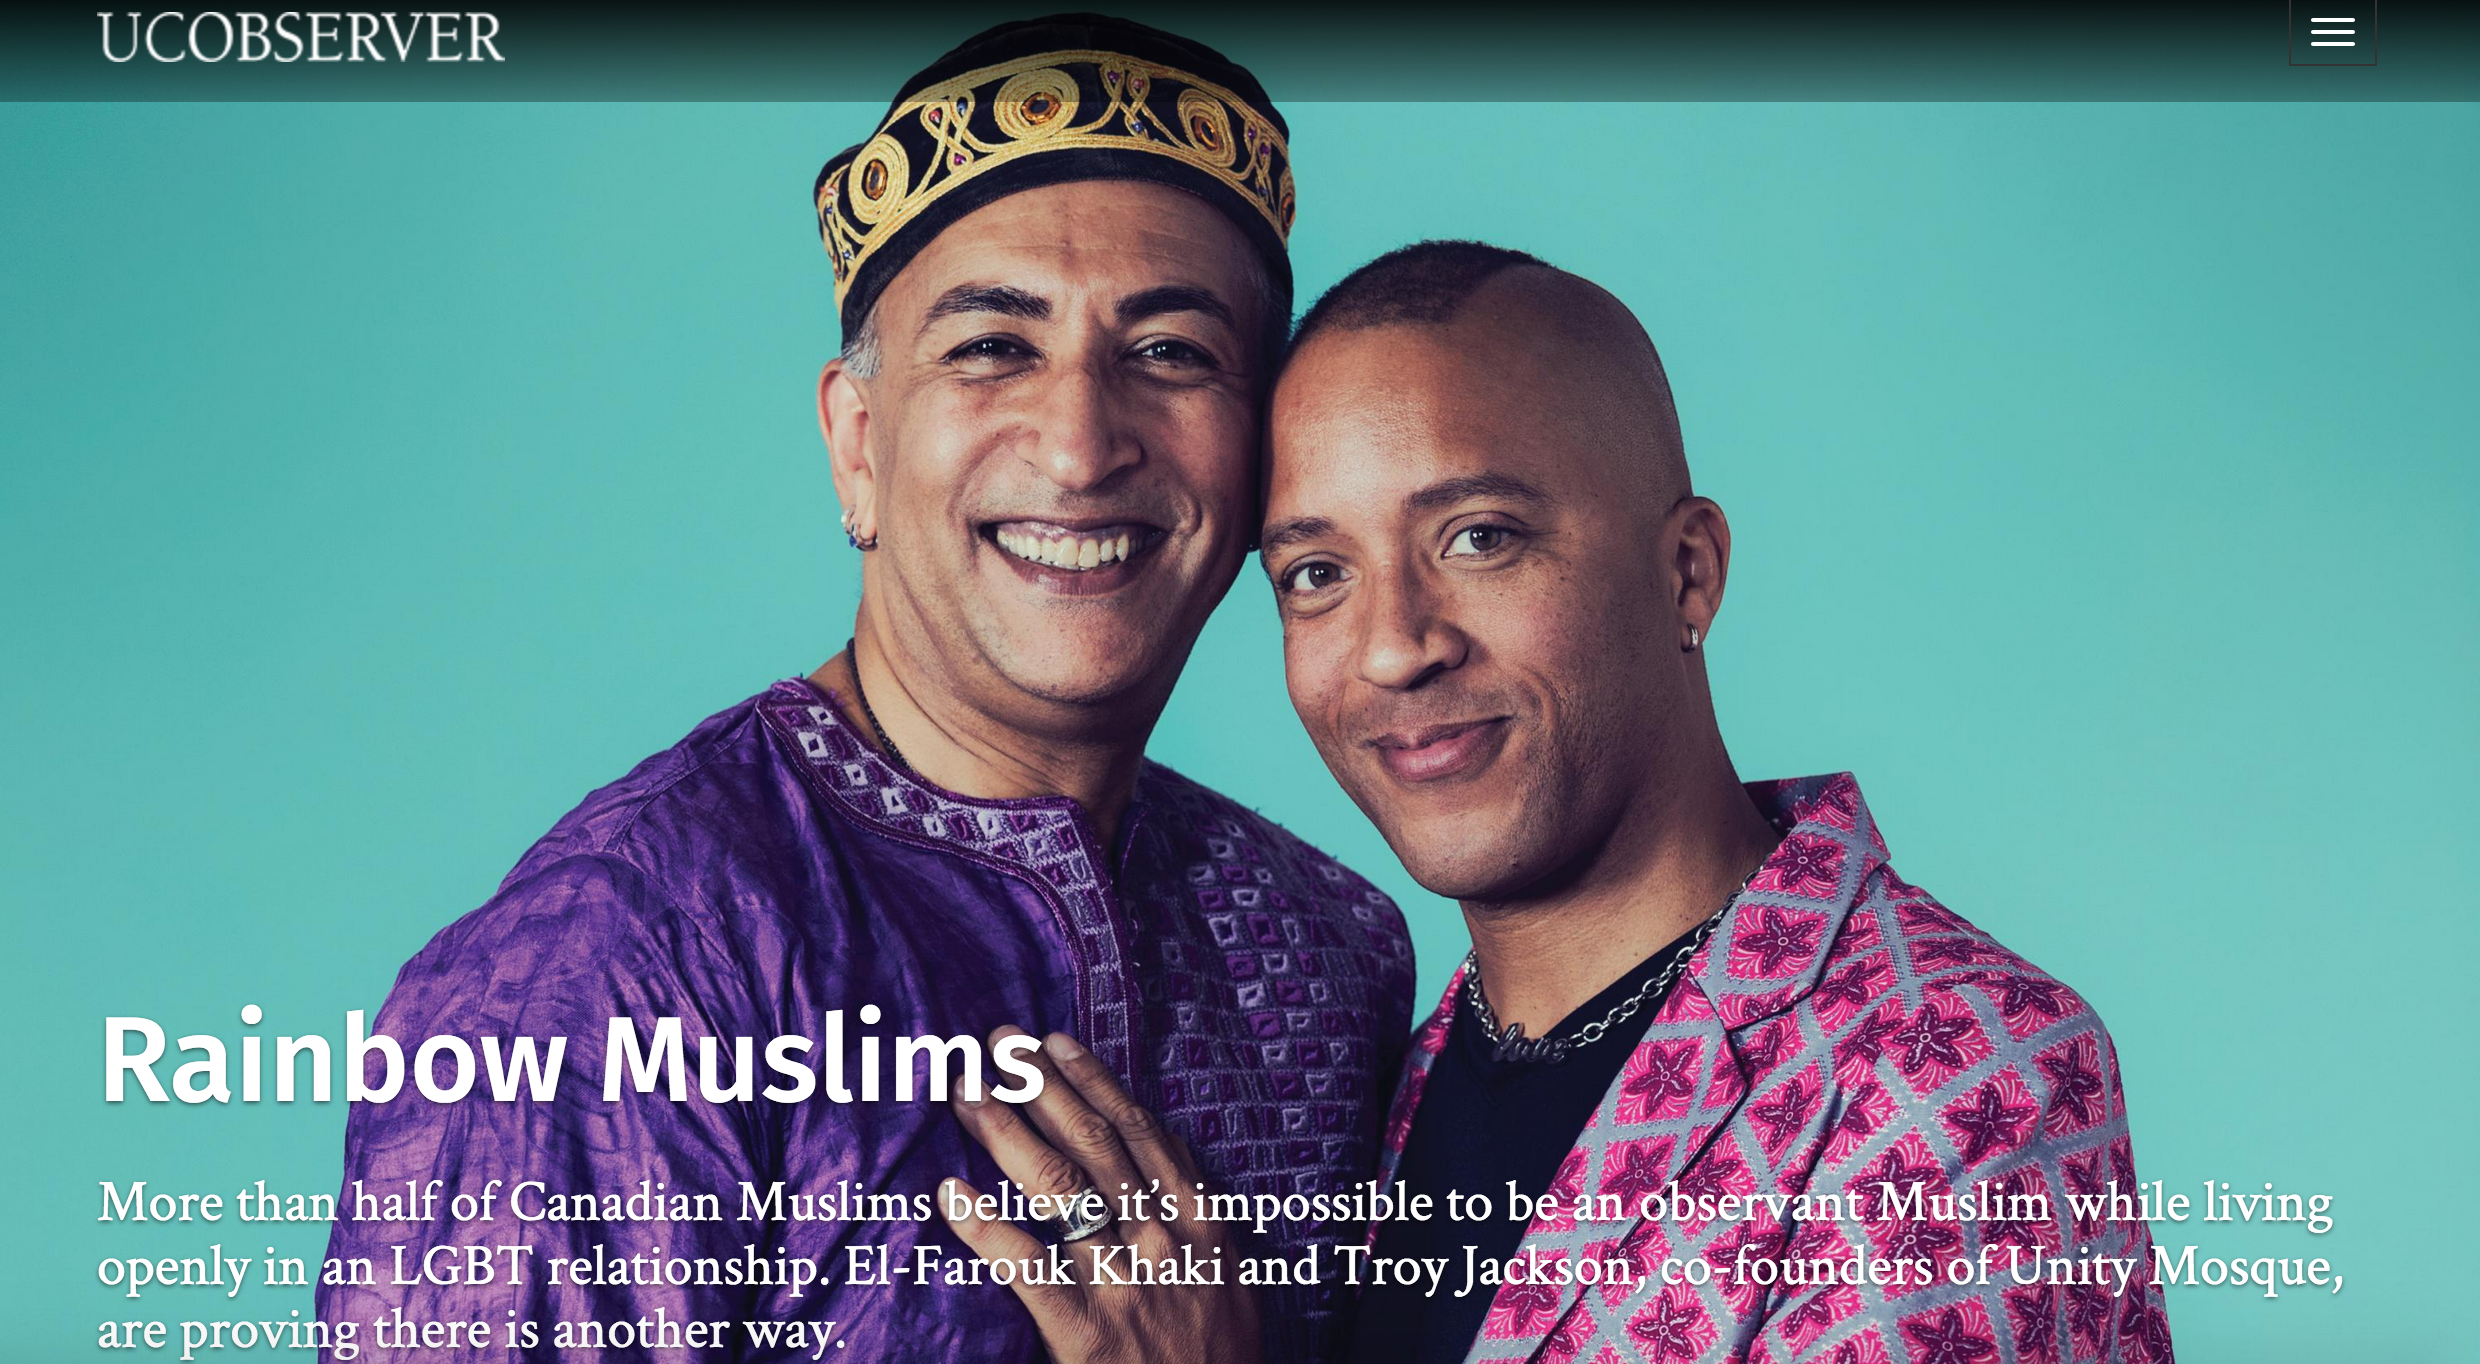 "It was reassuring for El-Farouk Khaki (far left) to know he wasn't alone, yet meeting others with a similar religious and sexual orientation made evident the lack of a space that spoke directly to queer Muslims' needs. Photo by Daniel Ehrenworth  Faith  September 2016    It's a Friday afternoon in April , and I'm standing among eight other people in the lobby of an office building in downtown Toronto, waiting for an elevator. Finally, a chime, and we all make our way in. The doors close, and we start to climb. I'm pretty sure I'm the only one in the car who is moments away from entering a space LGBTQ Muslims around the world can only dream of.   El-Farouk Khaki, one of the co-founders of Unity Mosque, happens to be passing by as soon as the elevator stops and I step out. ""You must be Davide,"" he says. ""You look exactly like your photos."" I realize Khaki has Googled me; strict safety concerns require a vetting of anyone who asks for the mosque's location. We step into the boardroom where Unity Mosque holds its prayers, and Khaki is immediately swarmed by people jockeying for his attention. He's been on vacation for three weeks with his husband and co-founder, Troy Jackson, and it's clear he's been missed. Khaki recognizes he can't speak with me today, and after glancing in my direction to let me know he hasn't forgotten, he invites me to his home for dinner.  It's no surprise Khaki is adored by congregants at Unity Mosque. The space likely would not exist without him. Unity Mosque, part of an umbrella group known as the El-Tawhid Juma Circle, with Unity Mosques around North America, including Ottawa and Montreal, is Khaki's attempt to show Islam's beauty. Started by Khaki, Jackson and Laury Silvers, the egalitarian space seeks to provide a welcoming place of worship and community to all, particularly queer people, trans people and women. For many, this is the difference between abandoning Islam and finding spiritual fulfilment, and the first chance to be queer and Muslim in one space without giving anything up. Still, the mosque's ability to reach queer Muslims outside the progressive hubs of major cities is unclear, and in the aftermath of the massacre perpetrated by a Muslim man at a gay nightclub in Orlando, the stakes of this outreach seem higher than ever. The difference between success and failure rests on reaching a demographic in need versus remaining physically and intellectually relegated to a minority within a minority.    I show up to Khaki's house  a few days after our first meeting, where he is sending emails relating to his work as a refugee and immigration lawyer. He tells me he believes the emphasis on beards and the hijab is a product of Bedouin culture, not a requirement of Islam. We have a back-and-forth, and eventually, smiling, he comes to a compromise: ""If women want to keep beards, and men want to wear head scarves, it's fine by me too."" This gender-bending line has deep implications for Khaki's egalitarian view of Islam, and the principles that inform how and why Unity Mosque functions. Unity Mosque's existence is Khaki's most important accomplishment, but making it possible was an emotionally draining process that at times also put him in physical danger.  Khaki was born in Dar es Salaam, Tanzania, but his family fled from political persecution when he was seven. After living in England, Khaki eventually came to Canada in 1974, at the age of 10, and settled in Vancouver. For him, coming out was a process of self-discovery beginning at 13. He regularly prayed at mosques at the time, but as the years went by, he felt he couldn't fully express his identity. Vancouver didn't have a large Muslim population, and he had no luck meeting other queer Muslims. This changed in 1989 when Khaki came to Toronto, and he began working as a political staffer for the Ontario New Democratic Party at Queen's Park two years later. In Toronto, he met others who were both queer and Muslim. Khaki says, ""Intellectually I knew I was not the only one, but my social reality before that was that I was the only one.""  It was reassuring for Khaki to know he wasn't alone, yet meeting others with a similar religious and sexual orientation made evident the lack of a space that spoke directly to queer Muslims' needs. ""Putting those two words together has always been a challenge,"" Khaki says, as people are, ""Muslim in one place, and queer in another place. But rarely, if ever, combined."" So, in 1991, he decided to create that space. The initial outcome was a monthly group, Salaam Social/Support Group for Lesbians and Gay Muslims. In his spare time, Khaki printed fliers advertising the group. He also put out ads in Xtra!, then a gay and lesbian weekly paper, and the left-leaning  news and entertainment tabloid Now, and quickly had a contact list of over 100 names. Members found the meetings to be useful, with some coming from as far as New York state. Salaam began to have internal issues, however, mostly revolving around privacy concerns. Many members weren't out to their families yet, and some told Khaki, ""If you phone me and my mom picks up the phone, don't tell her your name. Don't tell her why you're calling. If she asks you if you're gay, say you're not.""  The group also began receiving disturbing threats. Khaki and another woman, whose identity he keeps private, were approached by an editor at The Varsity, the University of Toronto's main student newspaper, and asked to write about being gay and Muslim. They did, but after the article was published the newspaper received a letter from Islamic Jihad, a militant group, calling for the writers' deaths. ""I was very traumatized by the threat,"" Khaki says. The police hate crimes unit was called, but Khaki says they told him they could do little, telling him they'd have an easier time protecting him if he had a higher profile.  In 2002, Khaki publicly presented himself as a gay Muslim for the first time.  Trembling Before G-d , a film about gay and lesbian Orthodox Jews, had come out the year before, and the publicist co-ordinating the film tour asked Khaki to sit on a post-screening panel as a queer Muslim. There Khaki met Rev. Cheri DiNovo, a United Church minister who is currently the NDP Member of Provincial Parliament for Parkdale-High Park. She asked him to speak at an interfaith vigil at her church on the first anniversary of the 9/11 attacks. She also invited him to what became a formative event for Khaki: an LGBT-friendly Passover celebration held by two queer women, where Jews, Christians and Muslims came together to celebrate. ""This is so incredibly subversive!"" Khaki thought, and he decided to share a Muslim tradition in a similar way. The result was the annual Peace Iftar, where people of all faiths and gender identities are invited to join Muslims in breaking their fast on a night in Ramadan. The first Peace Iftar was held in October 2003 in the basement of Emmanuel-Howard Park United, DiNovo's former pastoral charge in Toronto, and saw 140 people come together. Khaki also began to hold  Jummah  (Friday) prayer, a weekly congregational service Muslim men must attend, at his office.  The Noor Cultural Centre, a progressive Muslim space in Toronto, was also established that same year. Samira Kanji, its president, says her father created the centre out of a desire to see women treated in the same way as men in the mosque. Kanji notes that many of the people who now attend Unity Mosque also attend Noor Centre, and always feel welcome, something Khaki corroborates. Khaki has a deep respect for the centre, and continues to attend its Eid prayers. Still, he found the space wasn't exactly equal because men and women are still segregated during prayer, women aren't allowed to lead prayers and Kanji won't perform same-sex marriages. Khaki wanted more.  In March 2009, Laury Silvers, a sessional instructor in the Department for the Study of Religion at the University of Toronto, approached Khaki, eager to start a  Jummah  prayer space that would strive to be entirely equal. Khaki was excited to give this idea another shot, believing social media would eliminate past logistical and privacy issues. After a month of planning, including creating a Facebook group that now has over 1,000 members, Khaki held the first El-Tawhid Juma circle and Unity Mosque assembly at his office. Khaki, Jackson and Silvers sat waiting for people to show up on a hot afternoon in May, hoping this would be the start of a long-lasting institution.       Renée Mercuri says the rules help make Unity Mosque, 'A space that honours you for who you are and where you are on your journey, instead of saying where you are is problematic and doesn't fit in.' Photo by Daniel Ehrenworth    Around 1 p.m. on Fridays , congregants at Unity Mosque file into the boardroom, take yoga mats out of a closet, form a large square and lay thin sheets on top of the mats. These act as replacements for the plush carpets found in a typical mosque. Participants make their way to the ground, sitting in a circle on the mats; a few congregants sit on chairs for more comfort. In the centre of the circle are a couple of pots of tea and several mugs. Once everyone is gathered, including some who join in online, Khaki invites someone from the circle to read the rules of etiquette established for the space. Sometimes that person is Renée Mercuri — a middle-aged bisexual convert to Islam with short dark hair who attends almost every Friday.  It feels more like the itinerary you'd find in an activist space than in a mosque. The  khutbah   (sermon) includes an Indigenous land claim; the rules incorporate a proclamation that any sort of dress will be allowed in the space, with a citation from the Qur'an calling congregants to lower their gaze if they feel someone is dressed immodestly, as opposed to confronting them; and an explicit reminder that women don't need to cover their hair in the space. Mercuri says these rules help make Unity Mosque ""a space that honours you for who you are, and where you are on your journey instead of saying where you are is problematic and doesn't fit in with our rules."" At Unity Mosque, everyone can participate in the religious discussions following the  khutbahs , which are more seminar than lecture.  Finally, a congregant's voice recites a call to prayer, as men, women and trans people all find spots next to each other to pray — a stark difference from the gender segregation at the overwhelming majority of mosques. At Unity Mosque, the mixed congregation bows and prostrates in unison. The  Jummah  prayer wraps up, and the people move back into a circle to offer  duas  (communal supplications). Some want prayers for the Black Lives Matter movement, some the ongoing Attawapiskat suicide crisis and some for family members stuck in Syria.    Unity Mosque attracts a wide range  of congregants who represent Toronto's diverse population. There are several refugees on any given week, a diverse demographic of black people, more white converts than you'd find at a typical mosque, more women than men, more queer than straight. Congregants range in age from six to 70. Their histories are as diverse as they are: each has a unique story of how they made it to Unity Mosque.  It took Samra Habib nearly a decade to find her way there. Habib was born into a ""super religious family.""  She recalls being made to wear a hijab as a child, and by the age of 10, when they moved from Pakistan to Toronto, her parents had already selected someone for her to marry. At 16, Habib had her  nikkah , which refers to the ceremony whereby the bride and groom become legally married, though the actual wedding usually occurs at a later date. After quickly realizing she didn't love her spouse, Habib broke the marriage off, and, in the process, alienated herself from her mosque. By 18, she had run away from her family, living with friends for a couple of years, and then marrying her high school sweetheart. The marriage started off well, but it didn't take long for Habib to realize she was a queer woman.  I sit across from her as she tells me her story, at a bar in Toronto's west end with a rainbow flag outside its entrance. She pauses, sipping her gin and tonic, before continuing. Habib says she was unsure of what to do with her feelings. Eventually, she started to come out to people, but didn't find what she was looking for in Toronto's queer community. ""It just felt like I wasn't very welcome. They didn't seem like  my people ,"" Habib says, noting that most were white, and couldn't relate to growing up Muslim. She eventually stumbled upon Unity Mosque after hearing about Khaki through activist friends. Her first time attending, in early 2013, was overwhelming. ""I was crying throughout the whole thing. It was really emotional because I hadn't prayed in almost a decade. I was emotional because there was a trans woman saying the  adhan ,"" Habib says, referring to the call to prayer usually conducted by a man. ""It felt like it was my homecoming."" Habib began attending Unity Mosque regularly. It inspired her to launch  Just Me and Allah , a photography project featuring portraits and stories of queer Muslims around the world. It has since been exhibited in Toronto, Belgium, Germany and New York City. Unity Mosque is a rarity internationally, according to Habib, who says most of the people she's spoken to for her project are more isolated, lacking any physical queer Muslim community. ""When I tell people while I'm travelling that there's a queer Muslim space, it blows their mind."""